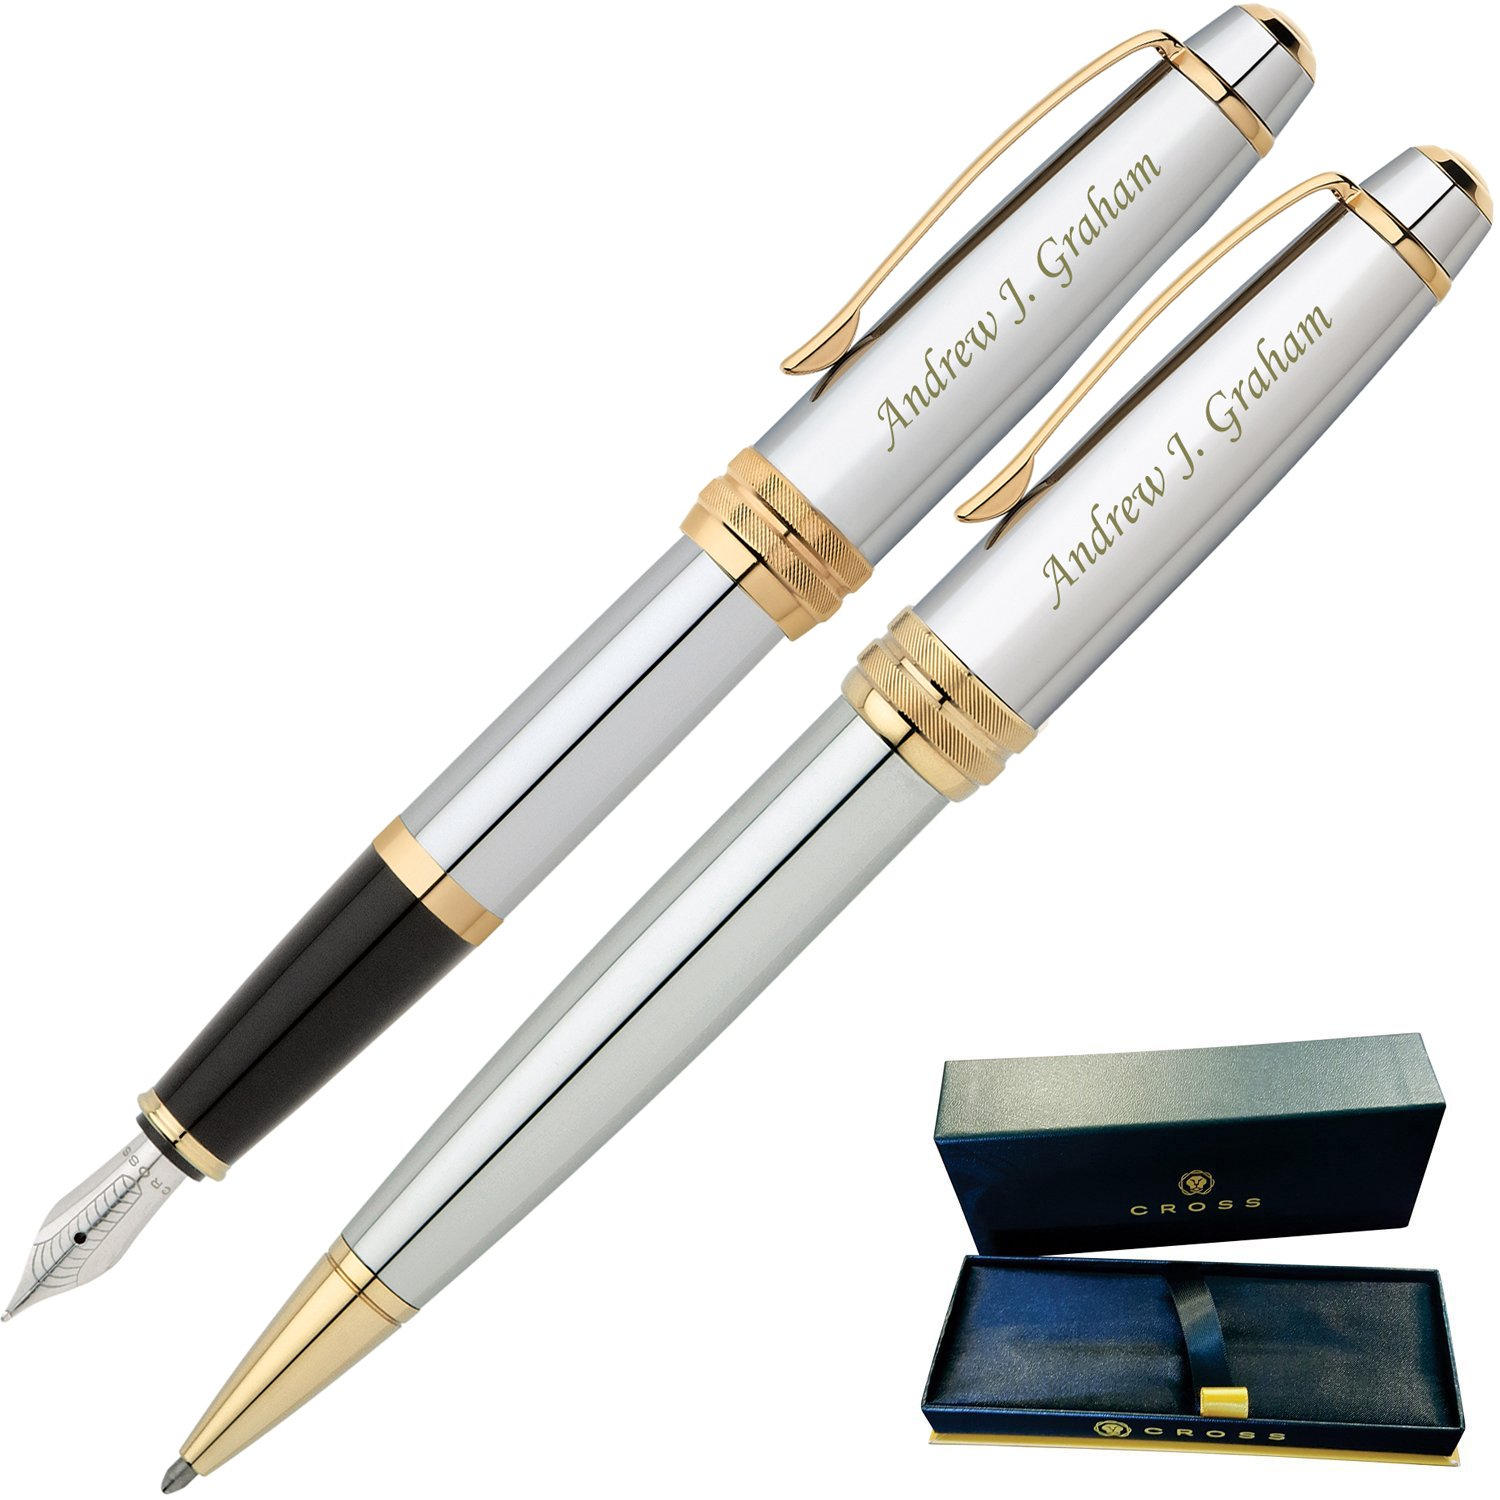 Dayspring Pens | Engraved/Personalized Cross Bailey Medalist Ballpoint and Fountain Gift Pen Set. Custom Engraved Case Included